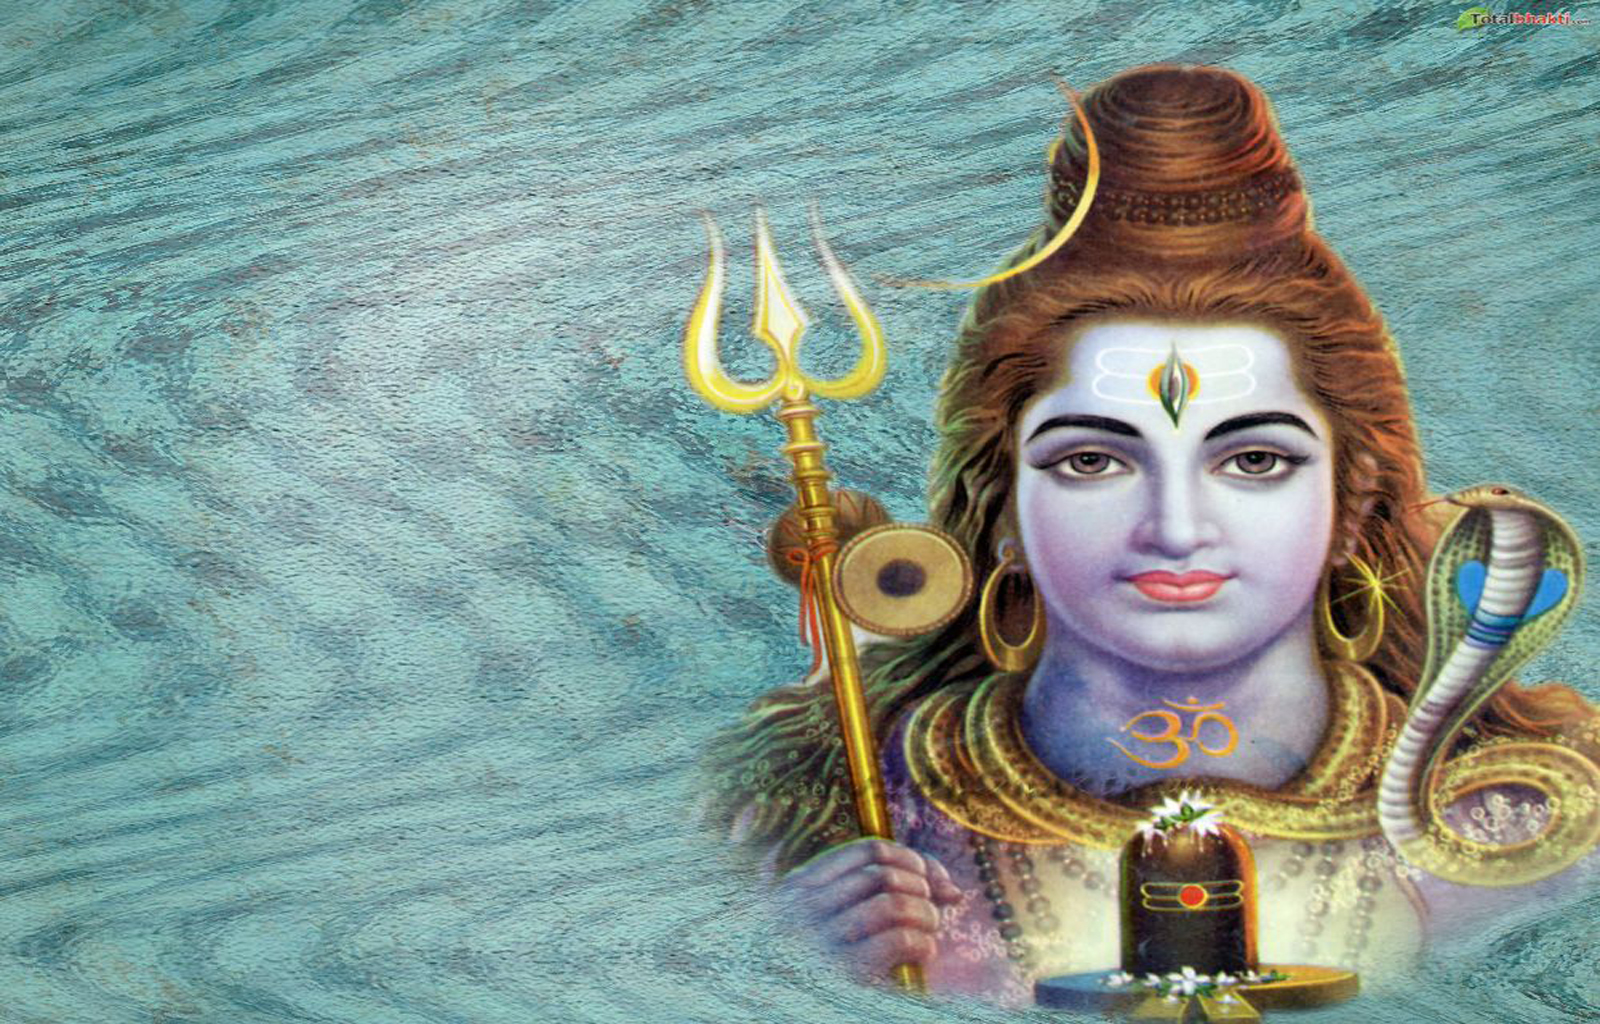 Beautiful Shiva Wallpapers Shiva Wallpapers Computer: Letest Lord Shiva Pictures Full HD Wallpapers Can Make